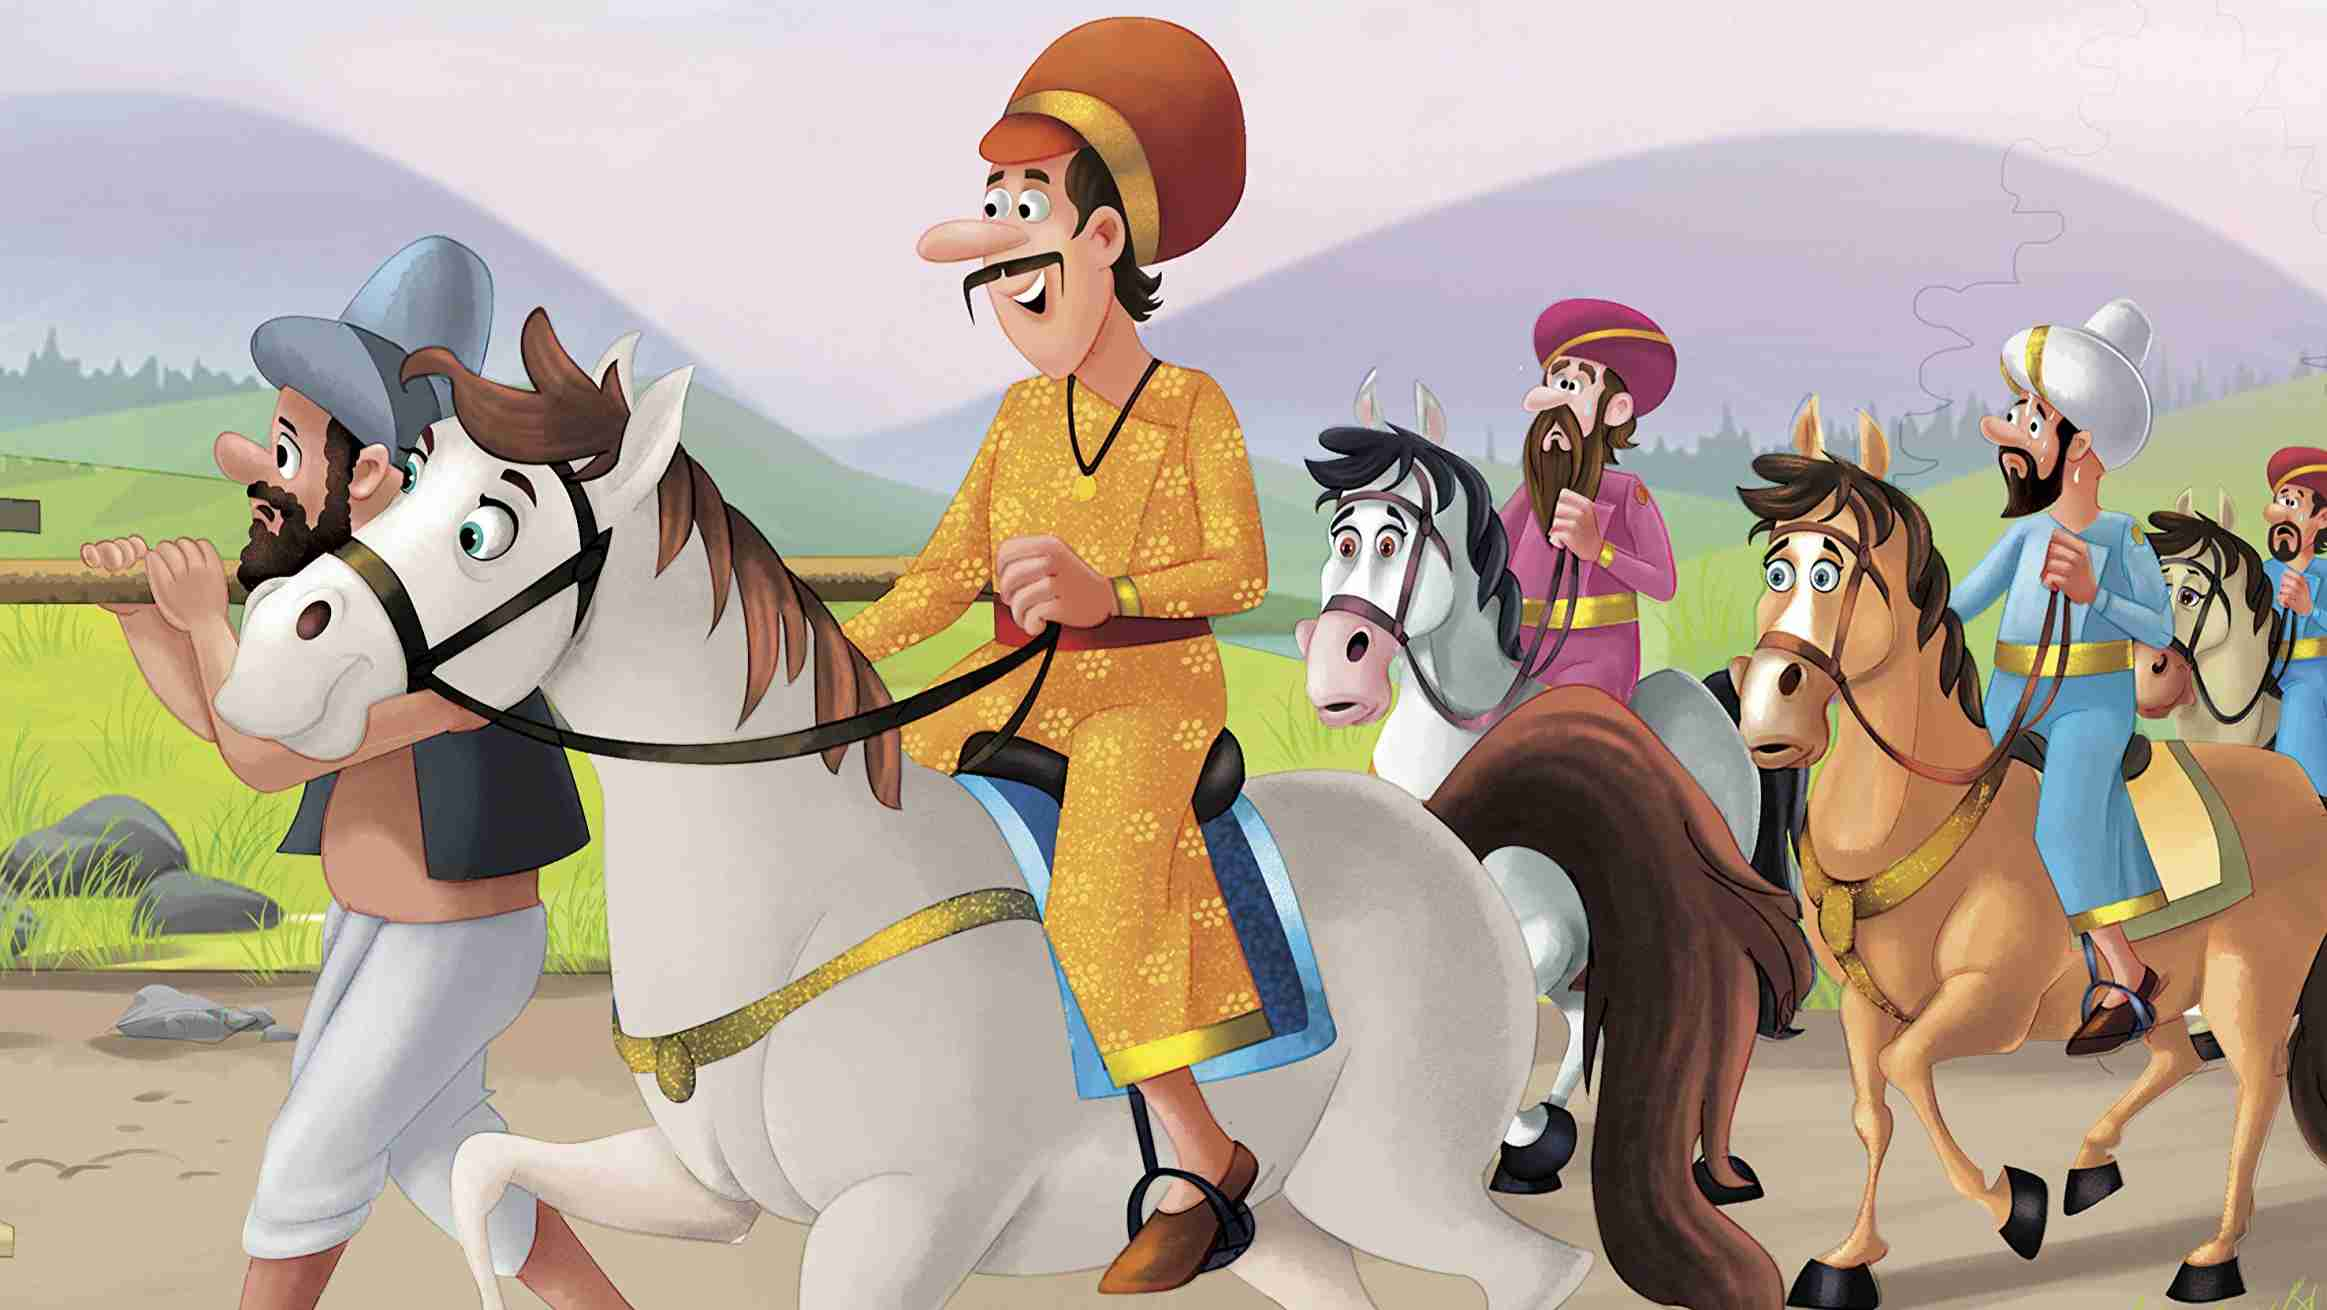 Birbal shortens the journey